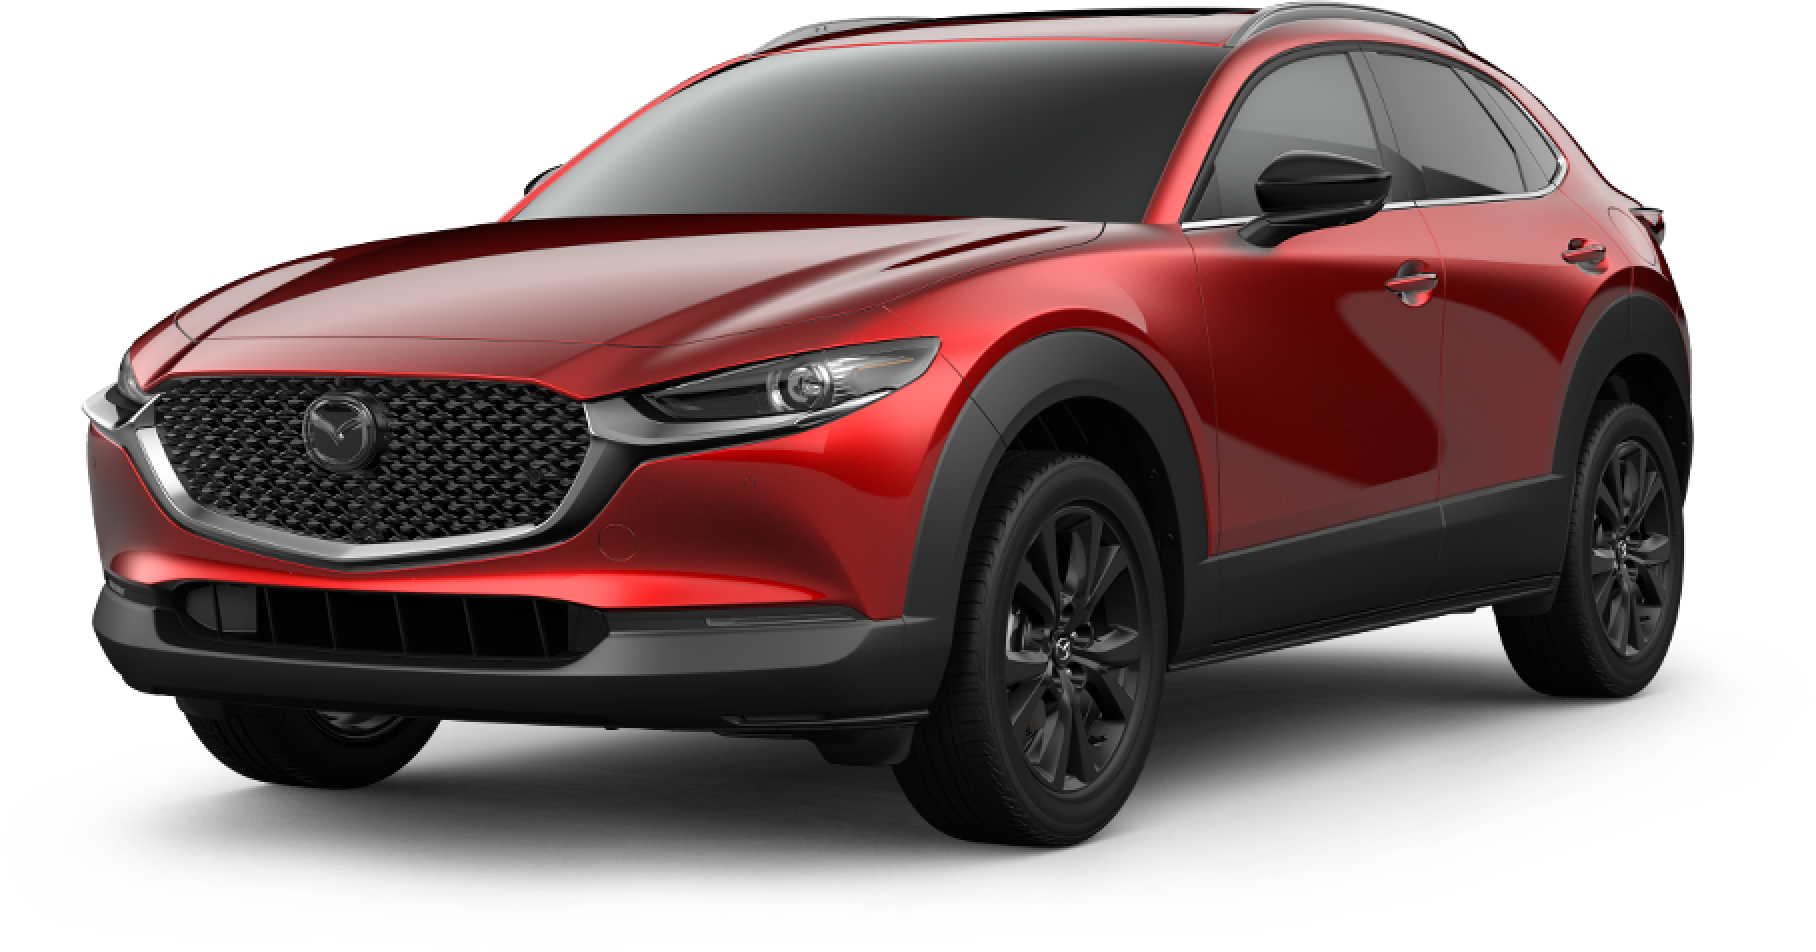 2021 Mazda CX-30, Soul Red Crystal Metallic